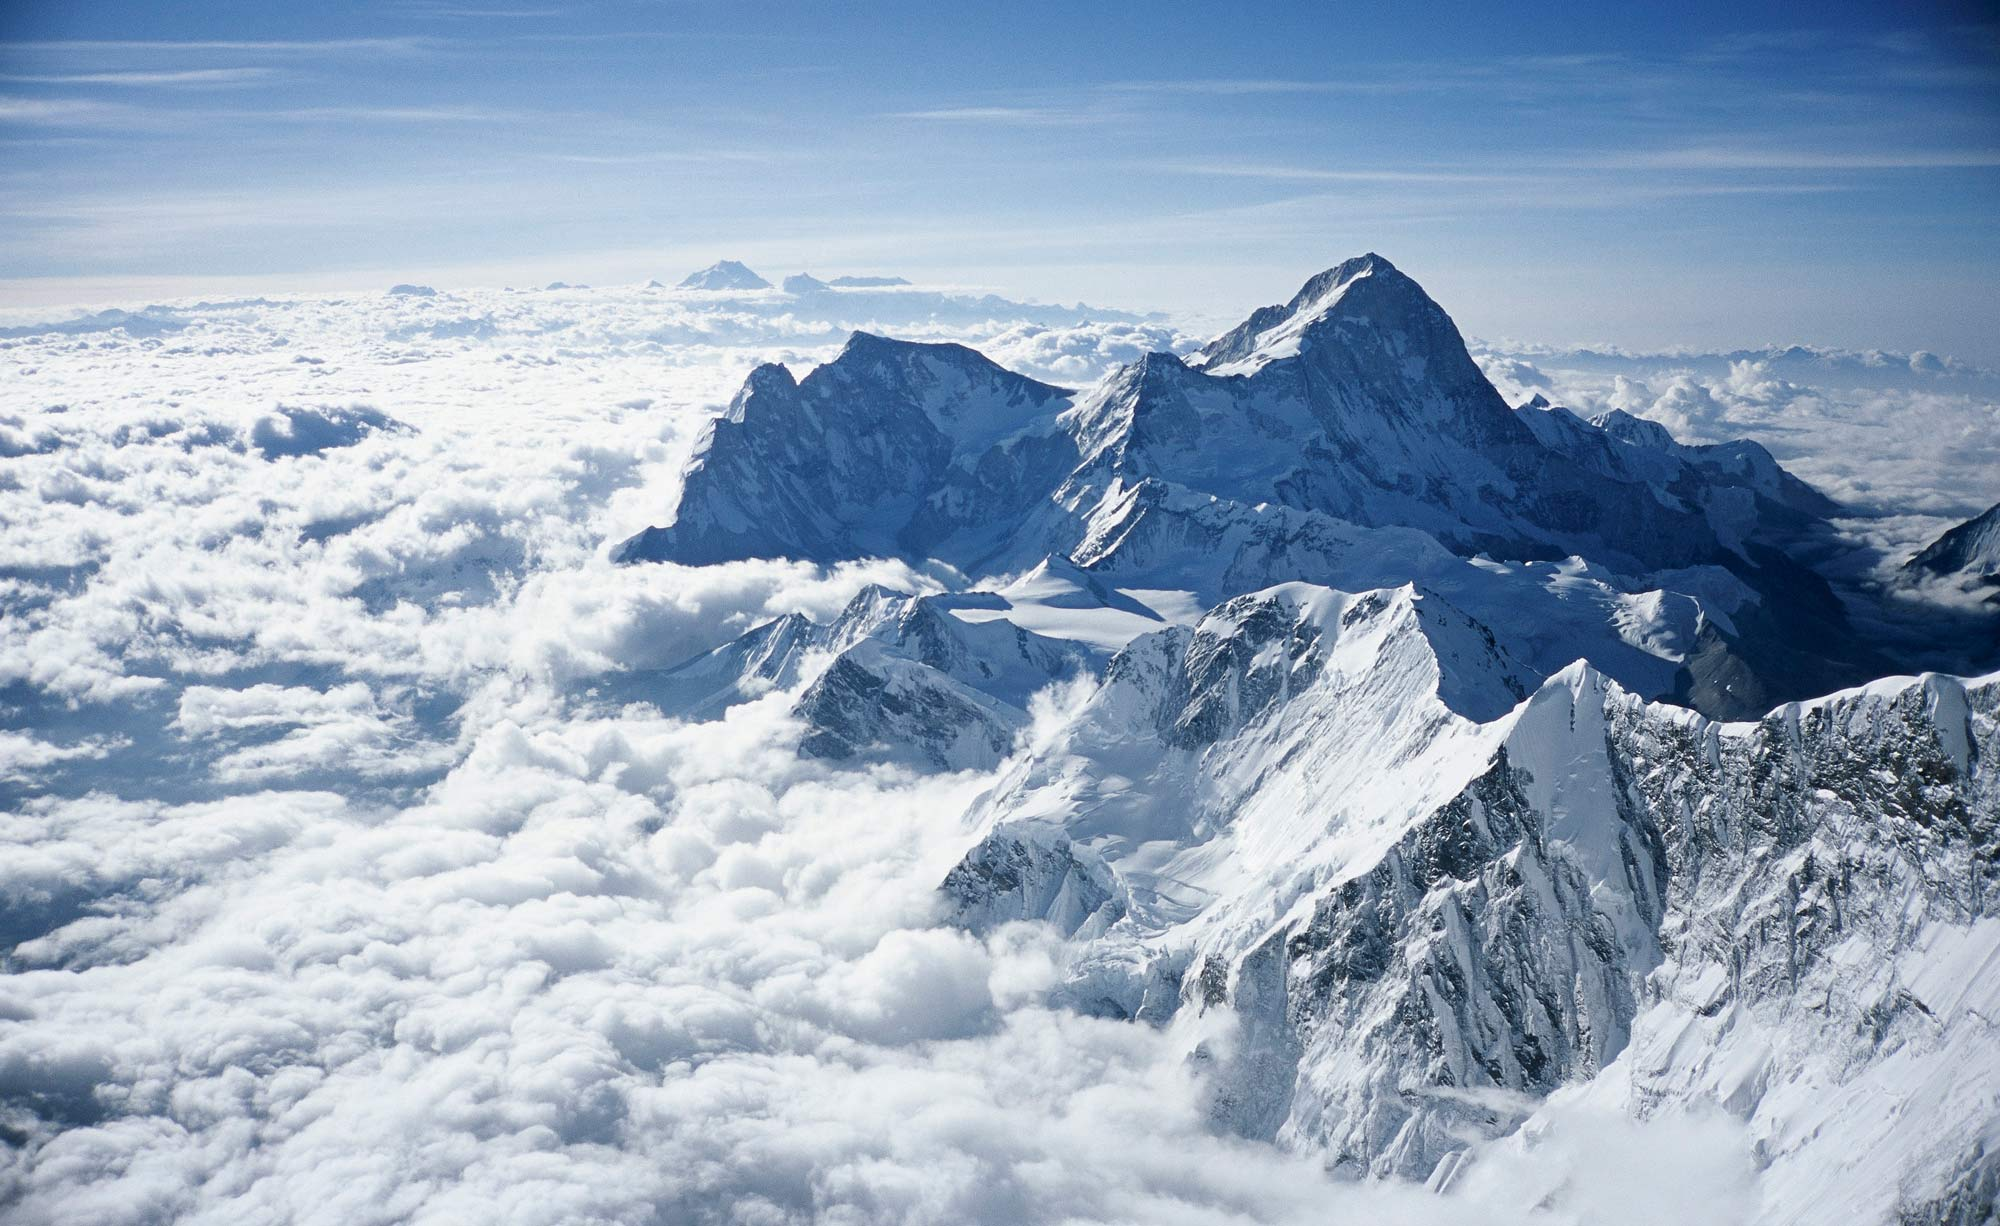 Mount Everest | Stefen Chow